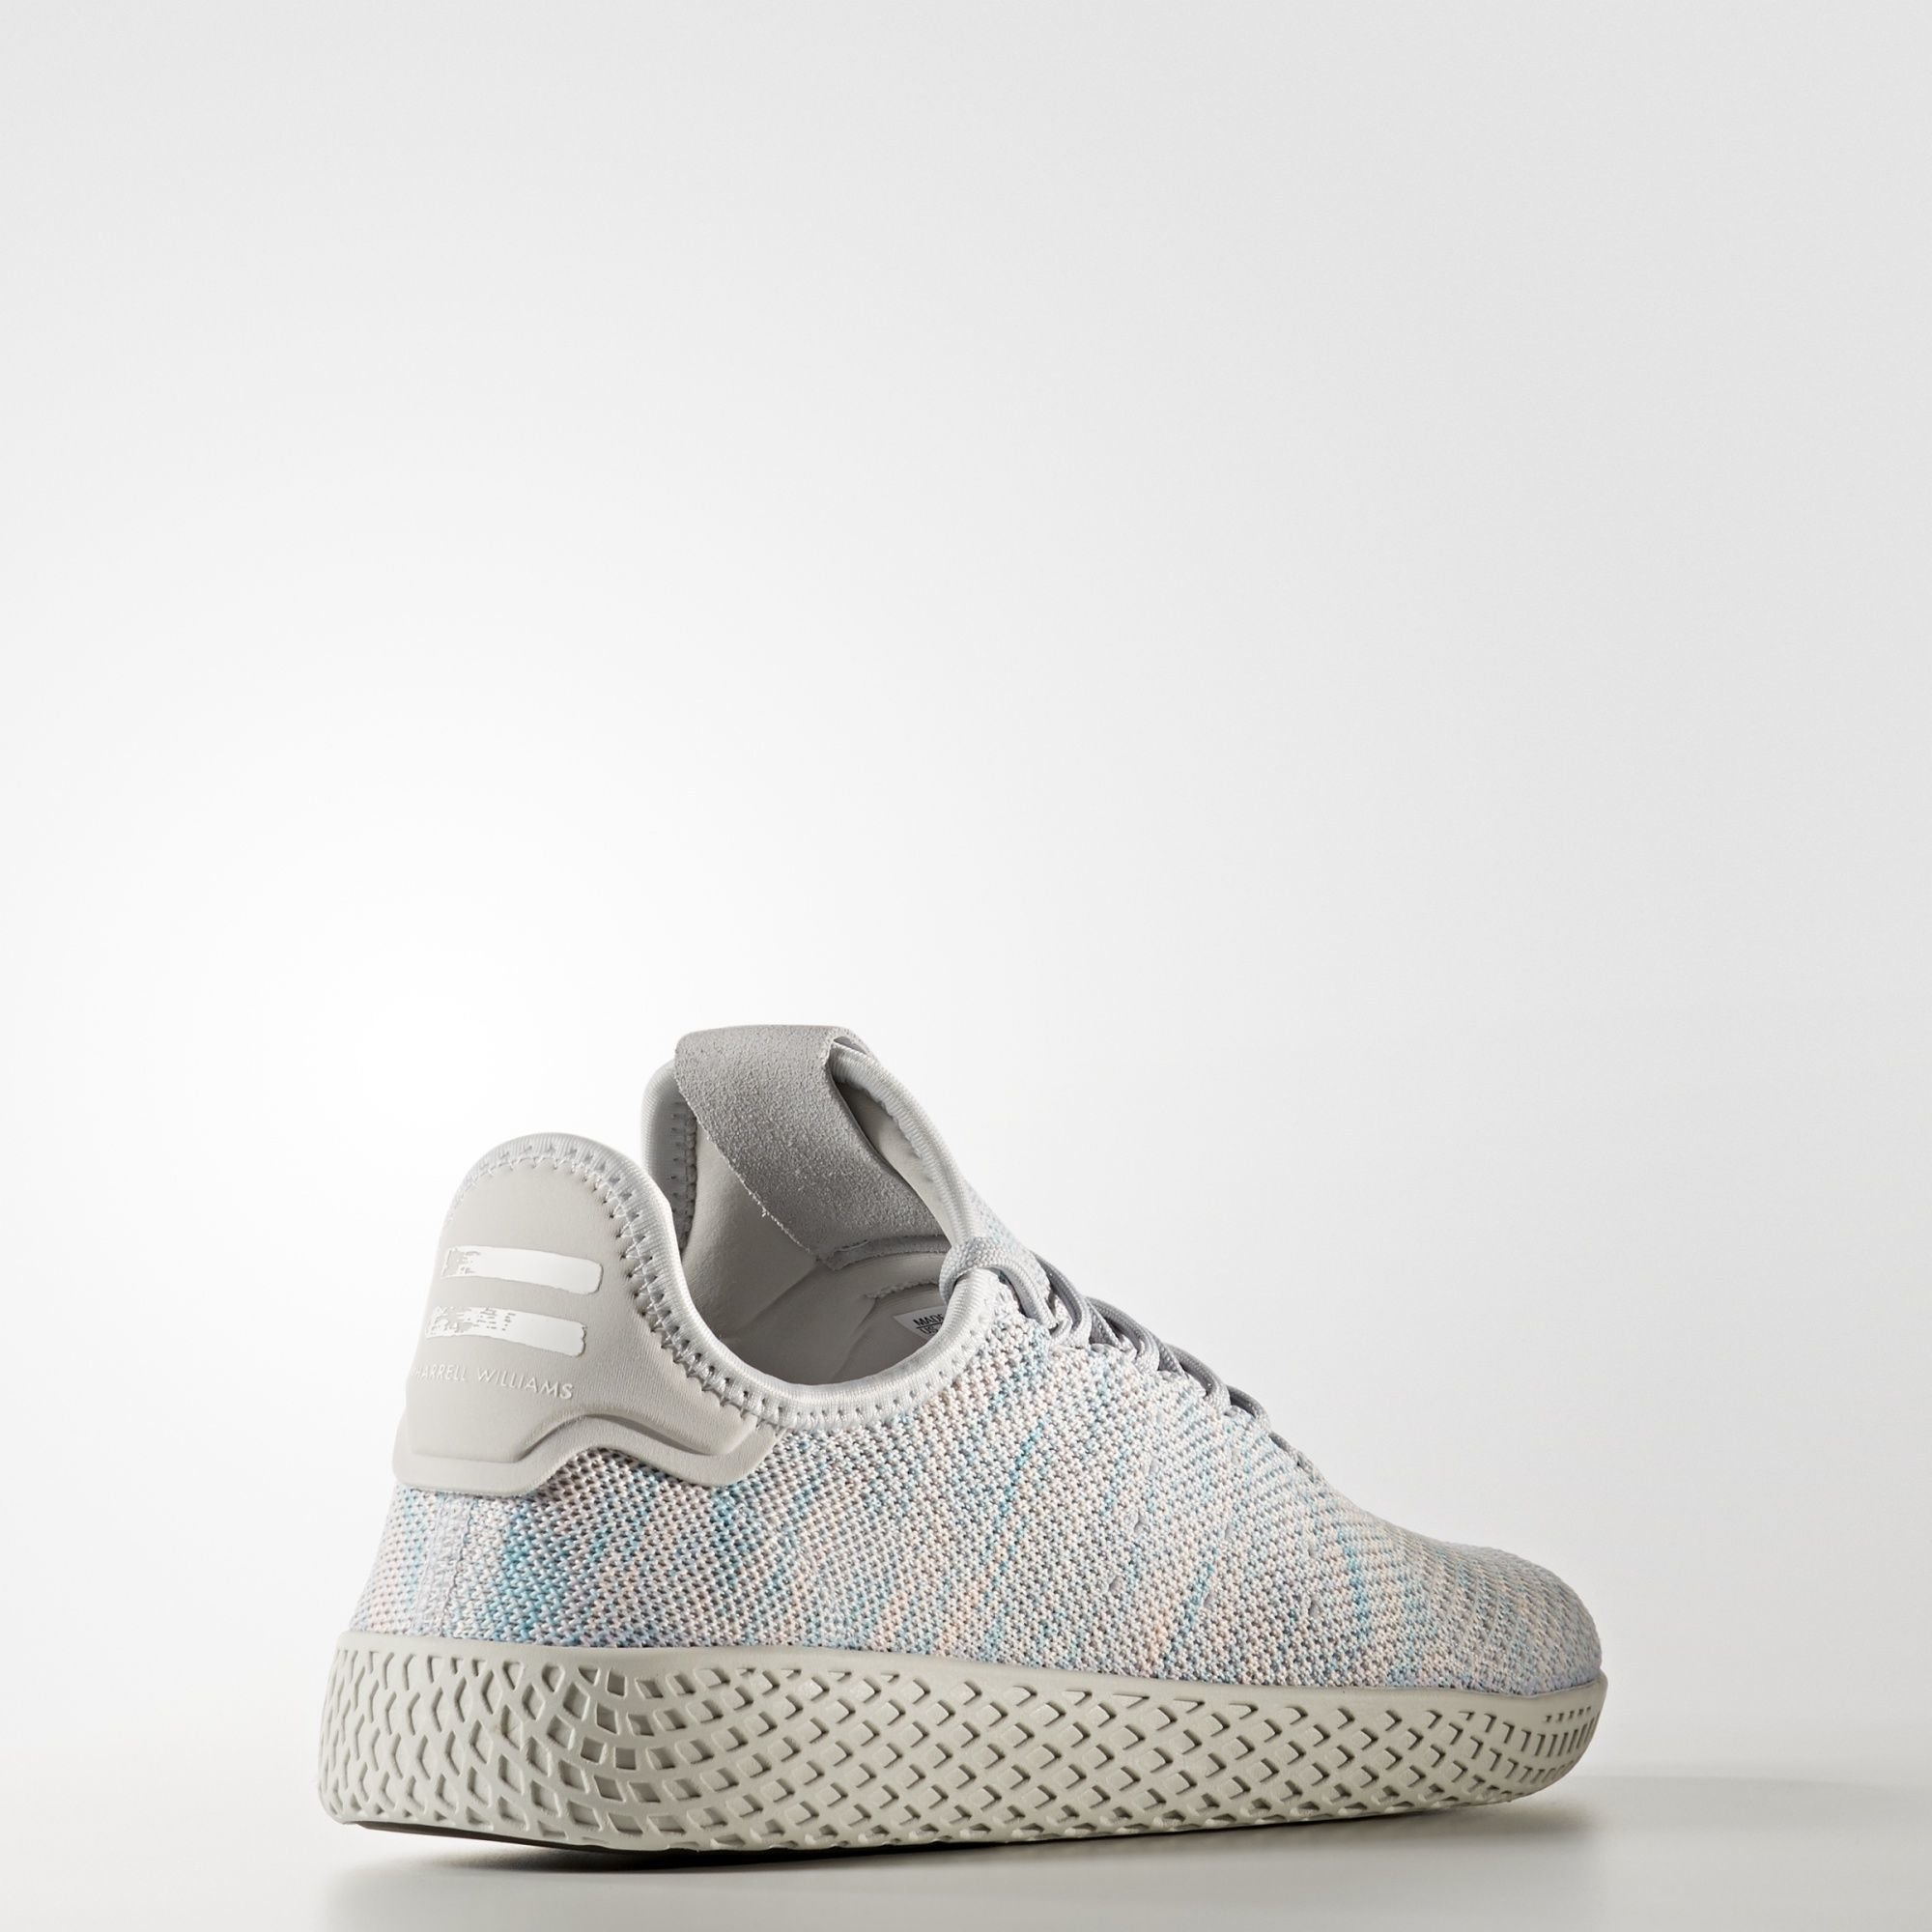 Pharrell x adidas Tennis HU Light Blue (BY2671)